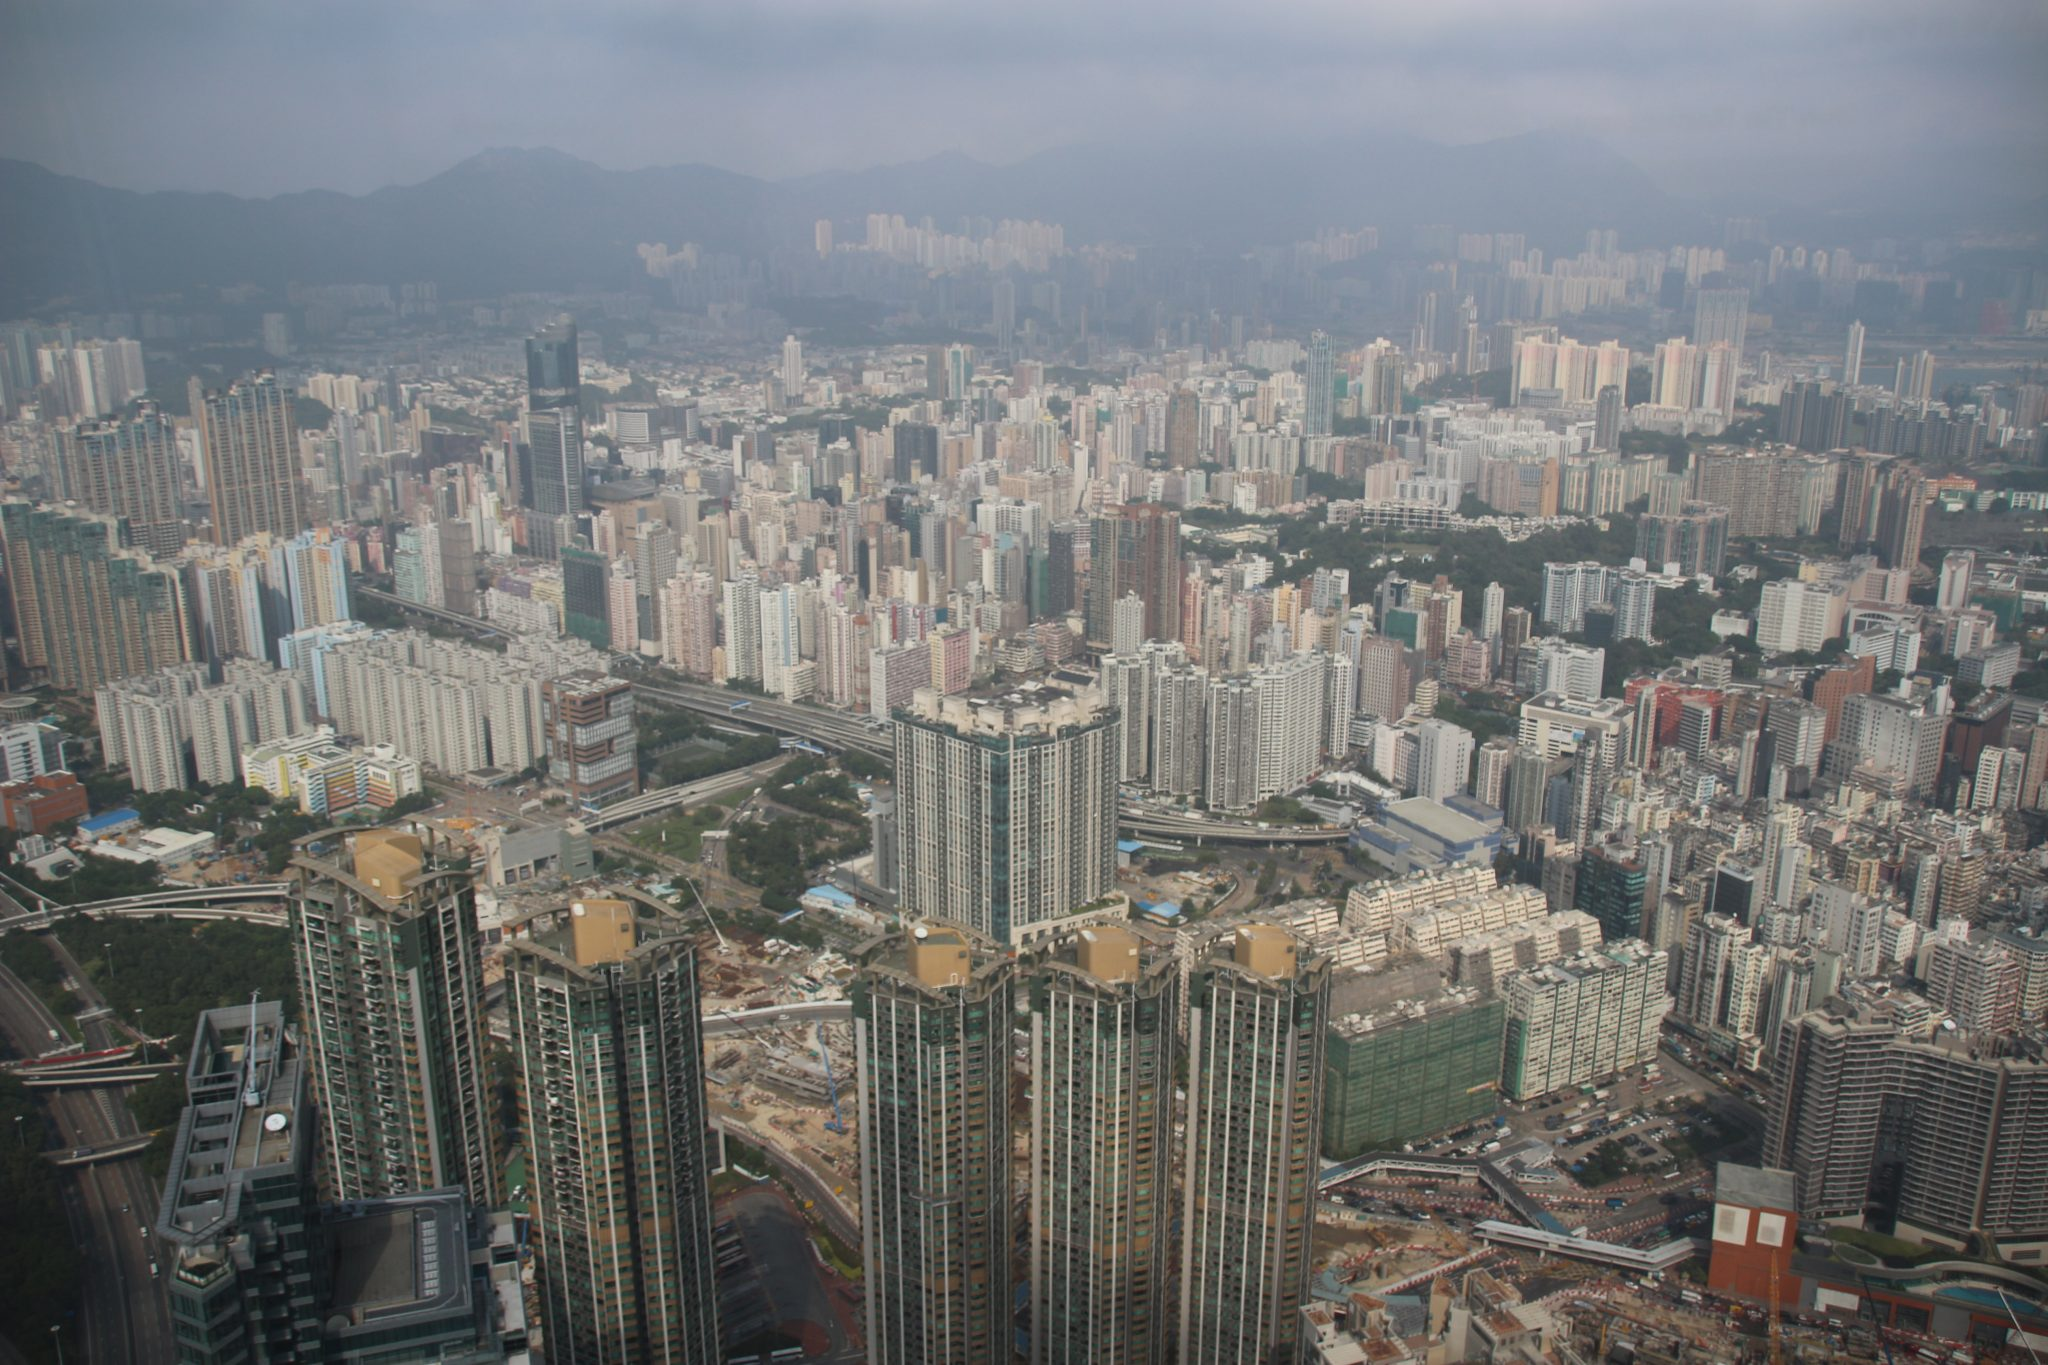 View from the Sky 100 Observation Deck, Hong Kong